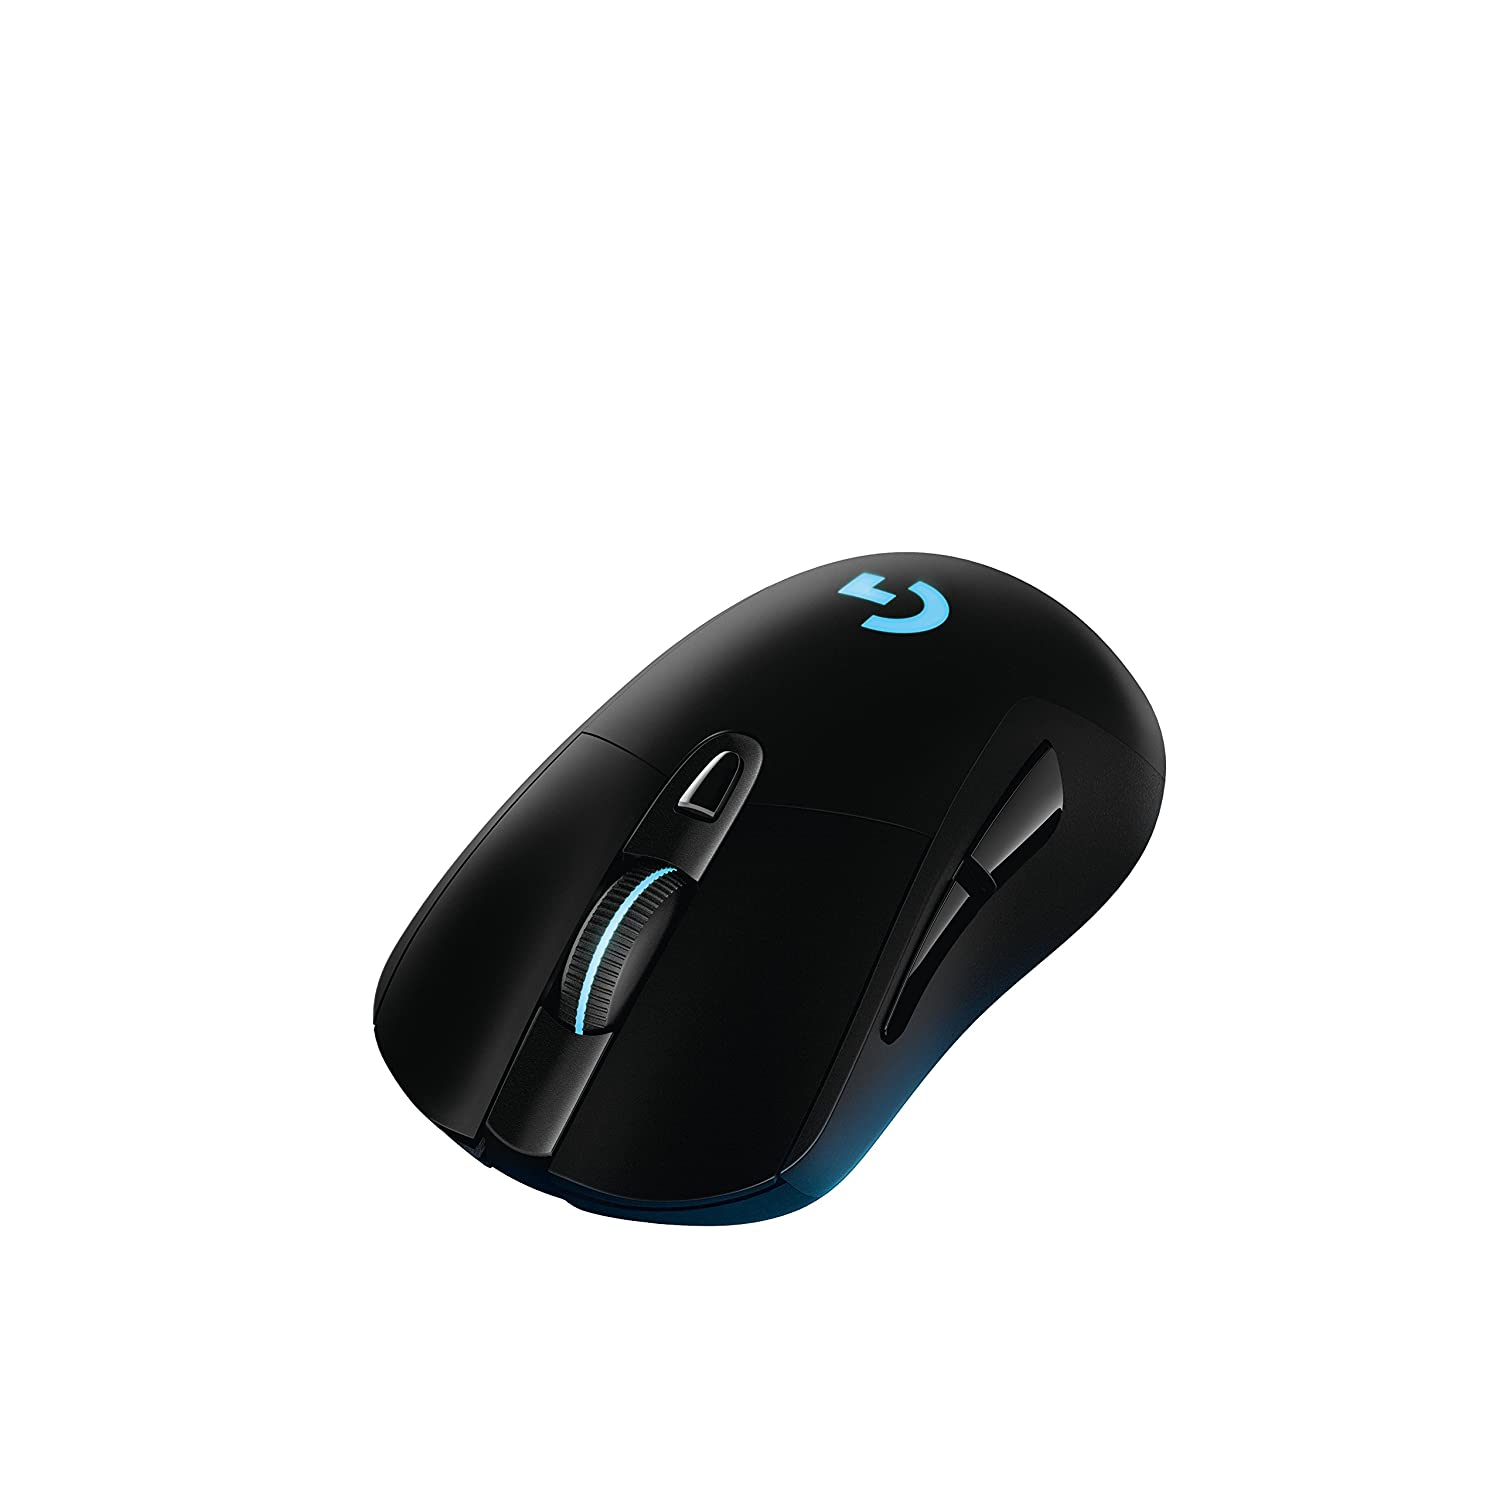 Amazon Logitech G403 Wireless Gaming Mouse with High Performance Gaming Sensor puters & Accessories